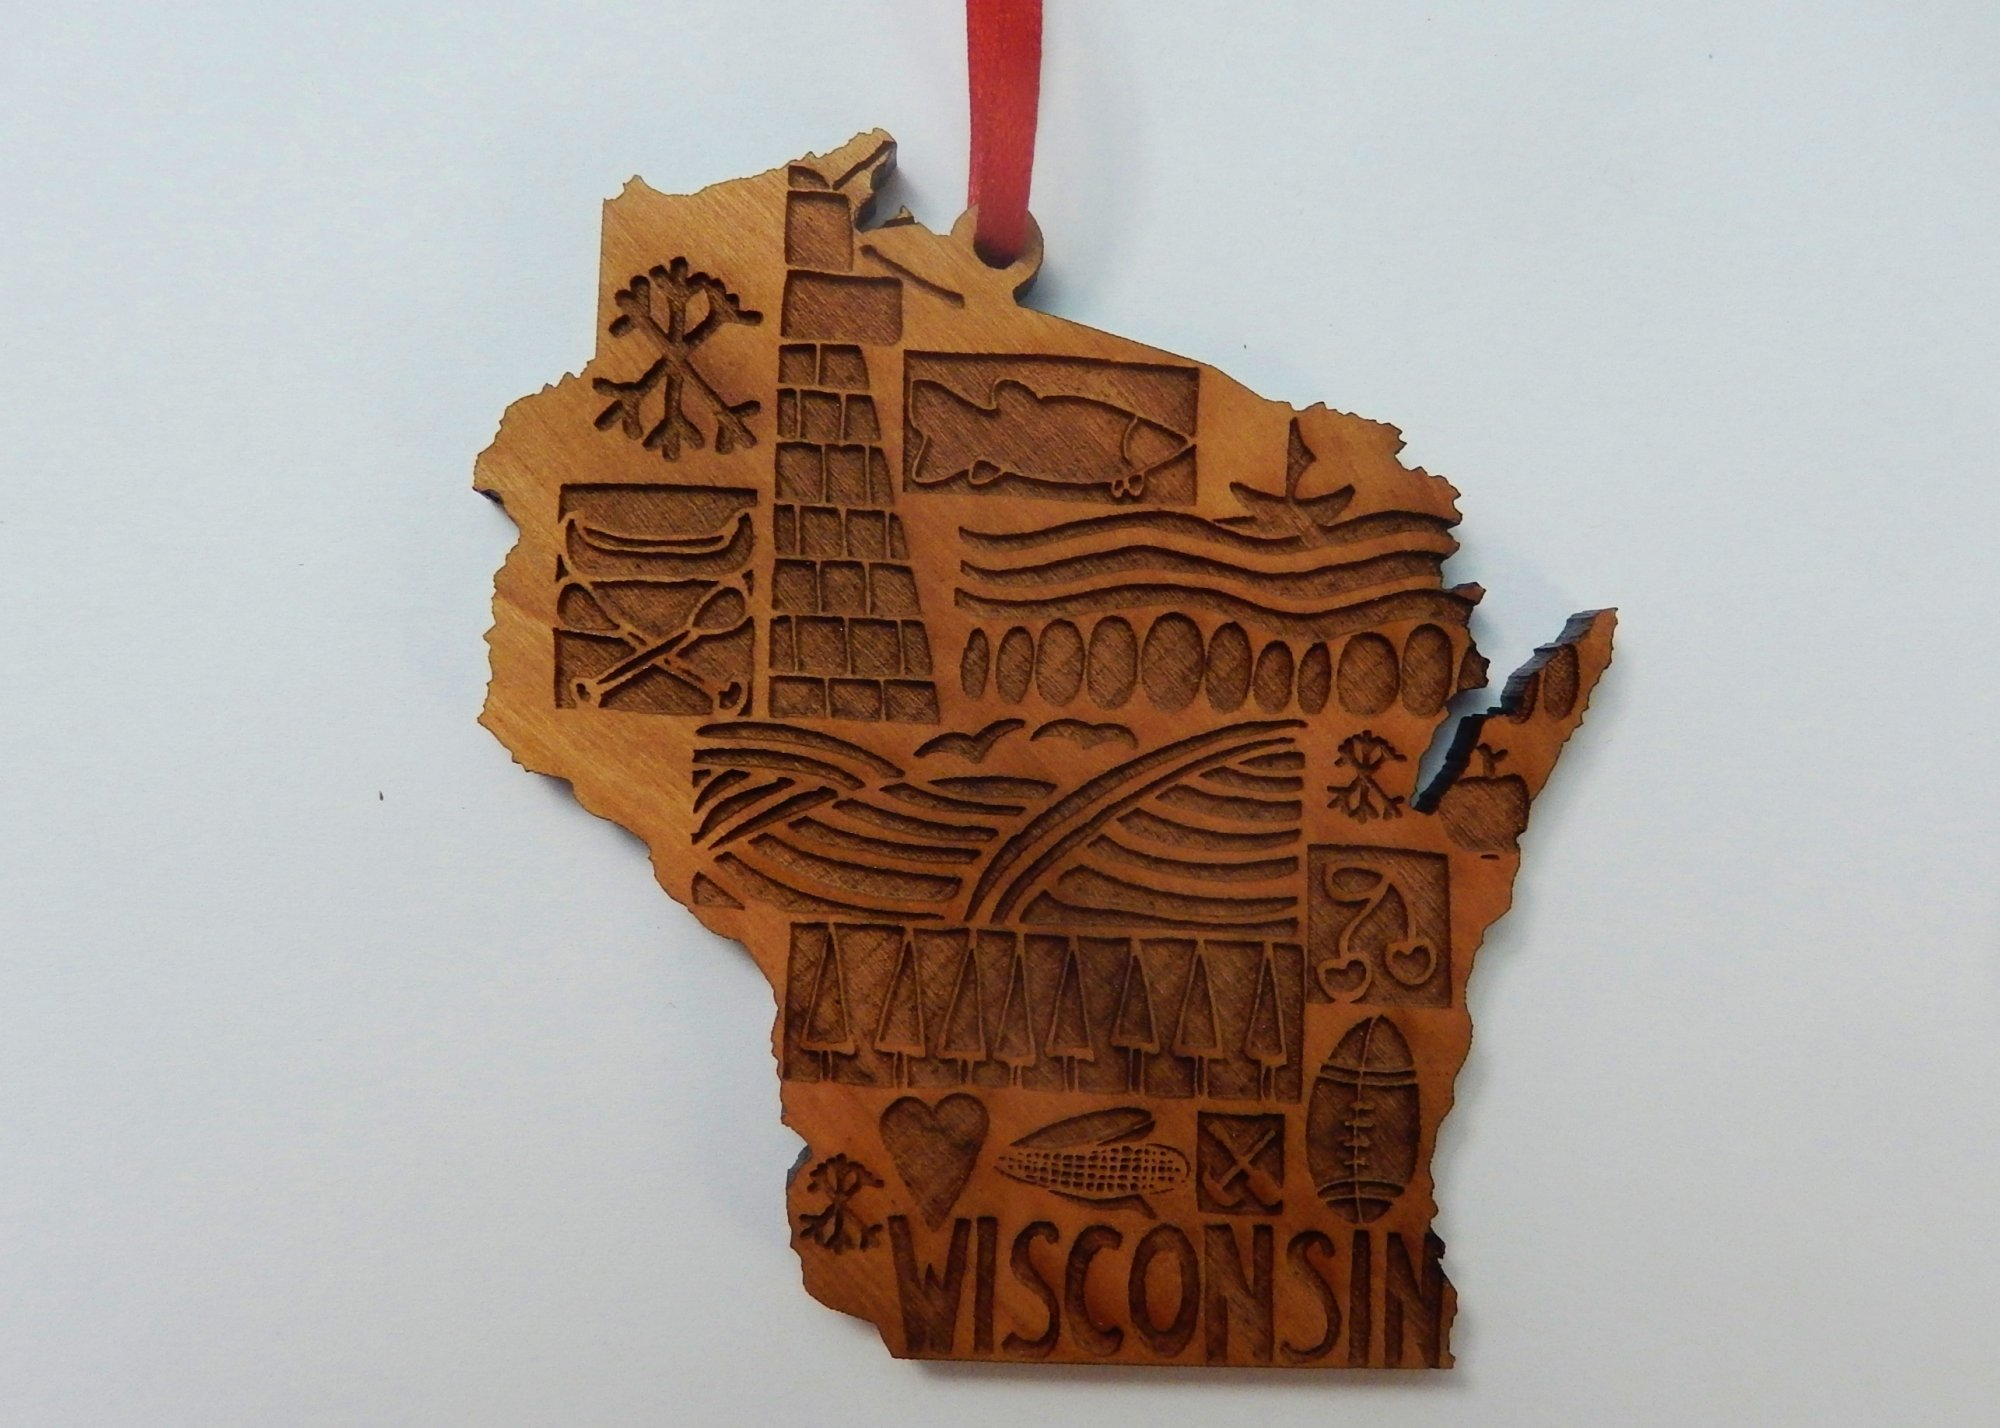 Wisconsin patchwork ornament